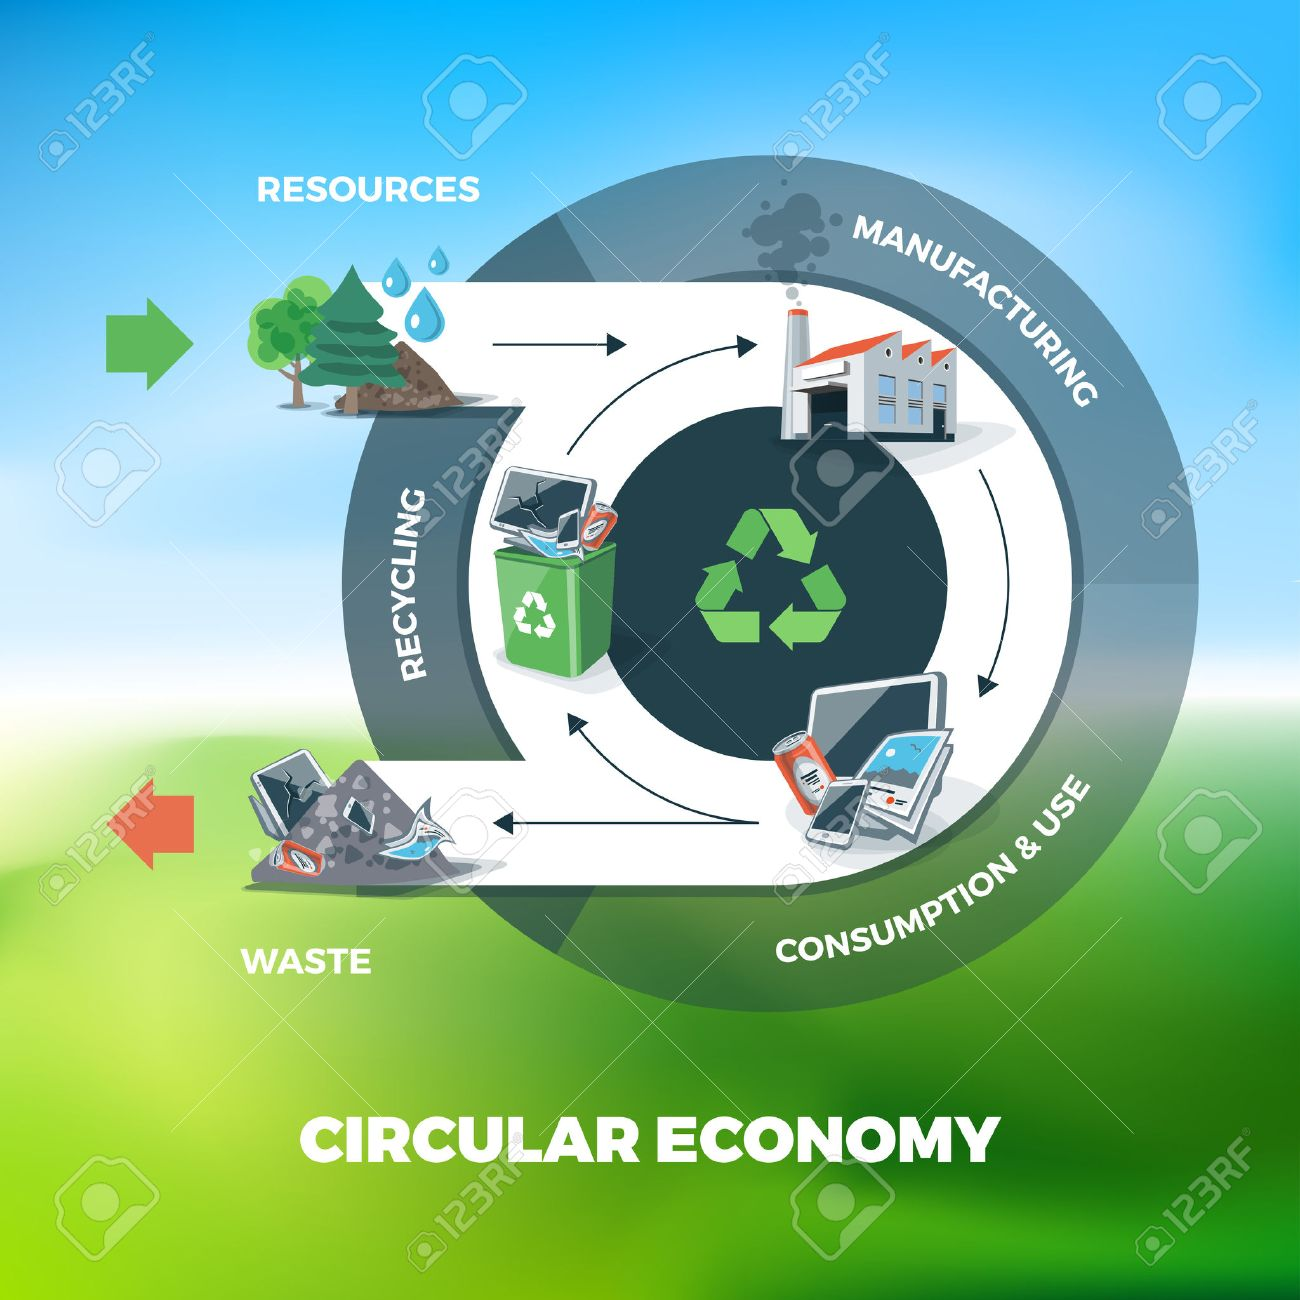 Vector illustration of circular economy showing product and material flow. Product life cycle. Sky meadow nature blurry background. Natural resources are taken to manufacturing. After usage product is recycled or dumped. Waste recycling management concept - 53169056